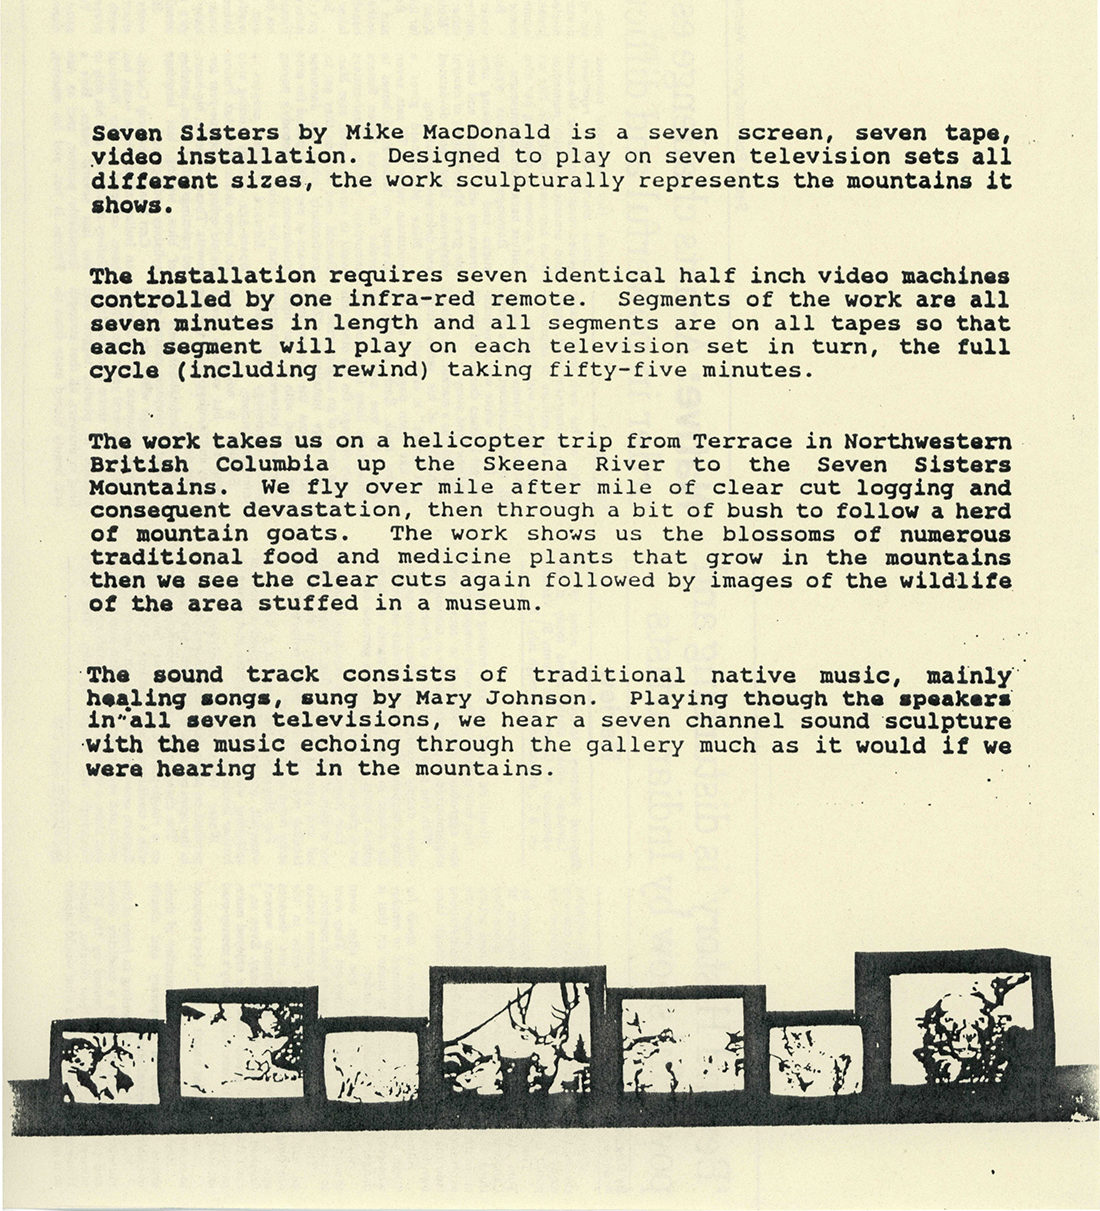 Seven Sisters artist statement by Mike MacDonald, 1989